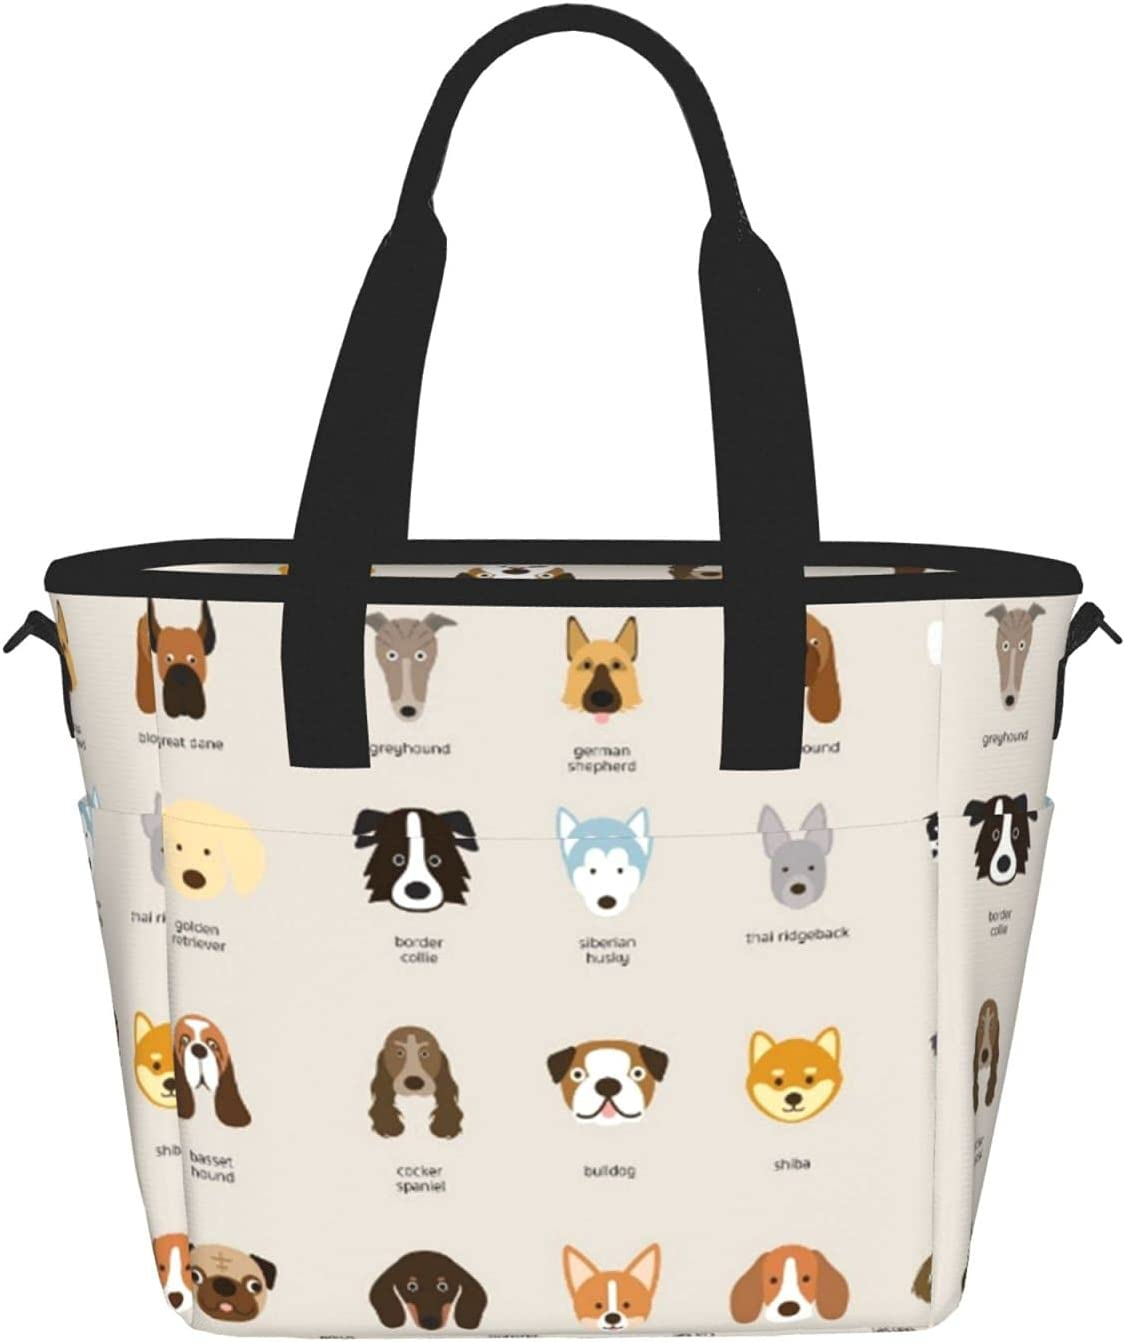 Dog Sale Breedprinting Women'S specialty shop Lunch Bag Meal Fashion Portable Lu